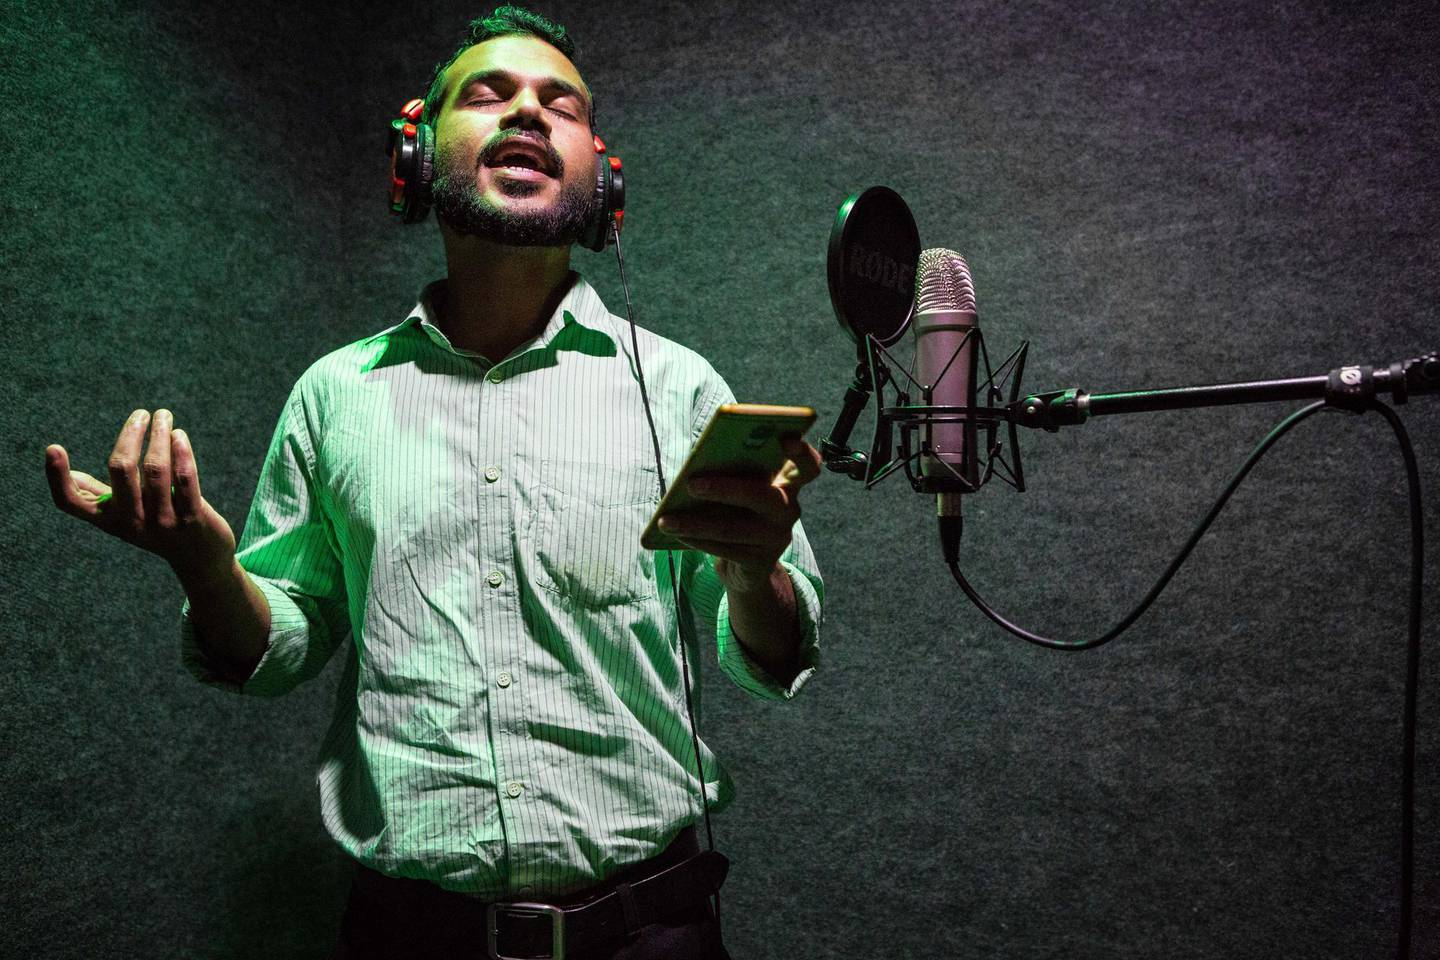 Singer Mohammed Aslam, 31, records a Kathu Pattu song at a musical studio located in Mampuram, Kerala, India. Photo by Sebastian Castelier